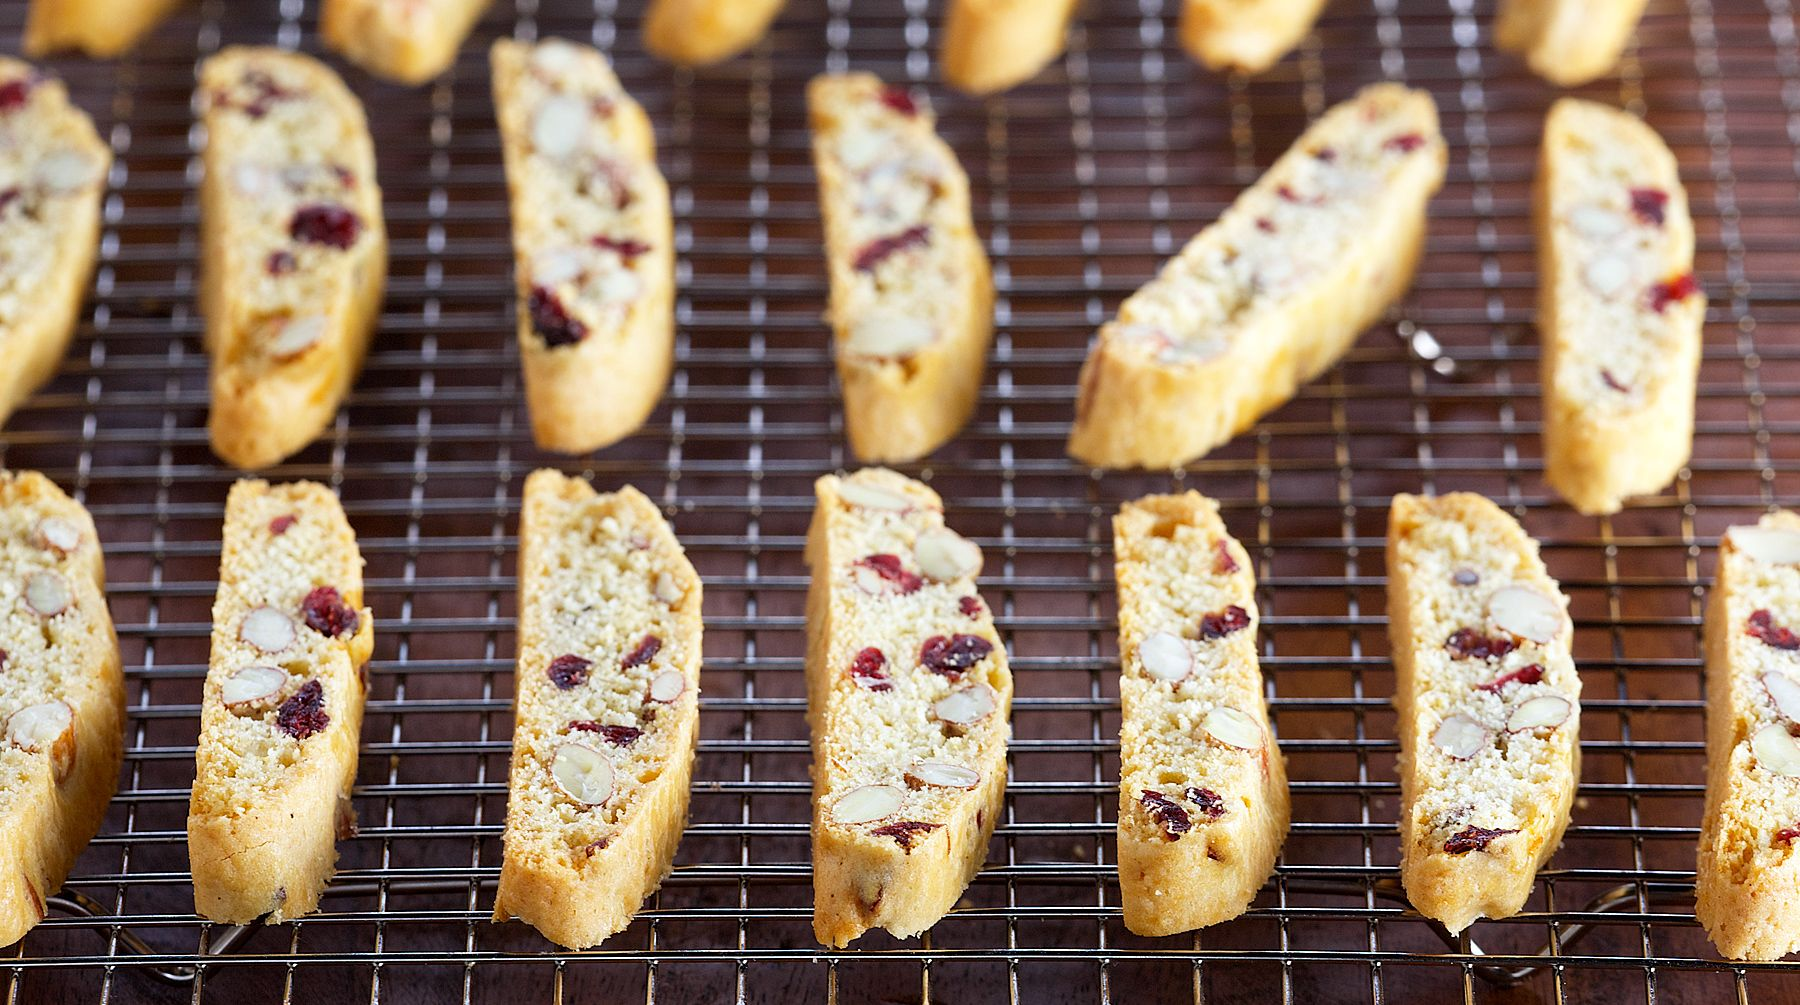 Bake with anna olson recipes classic cranberry almond biscotti bake with anna olson recipes classic cranberry almond biscotti asian food channel forumfinder Image collections